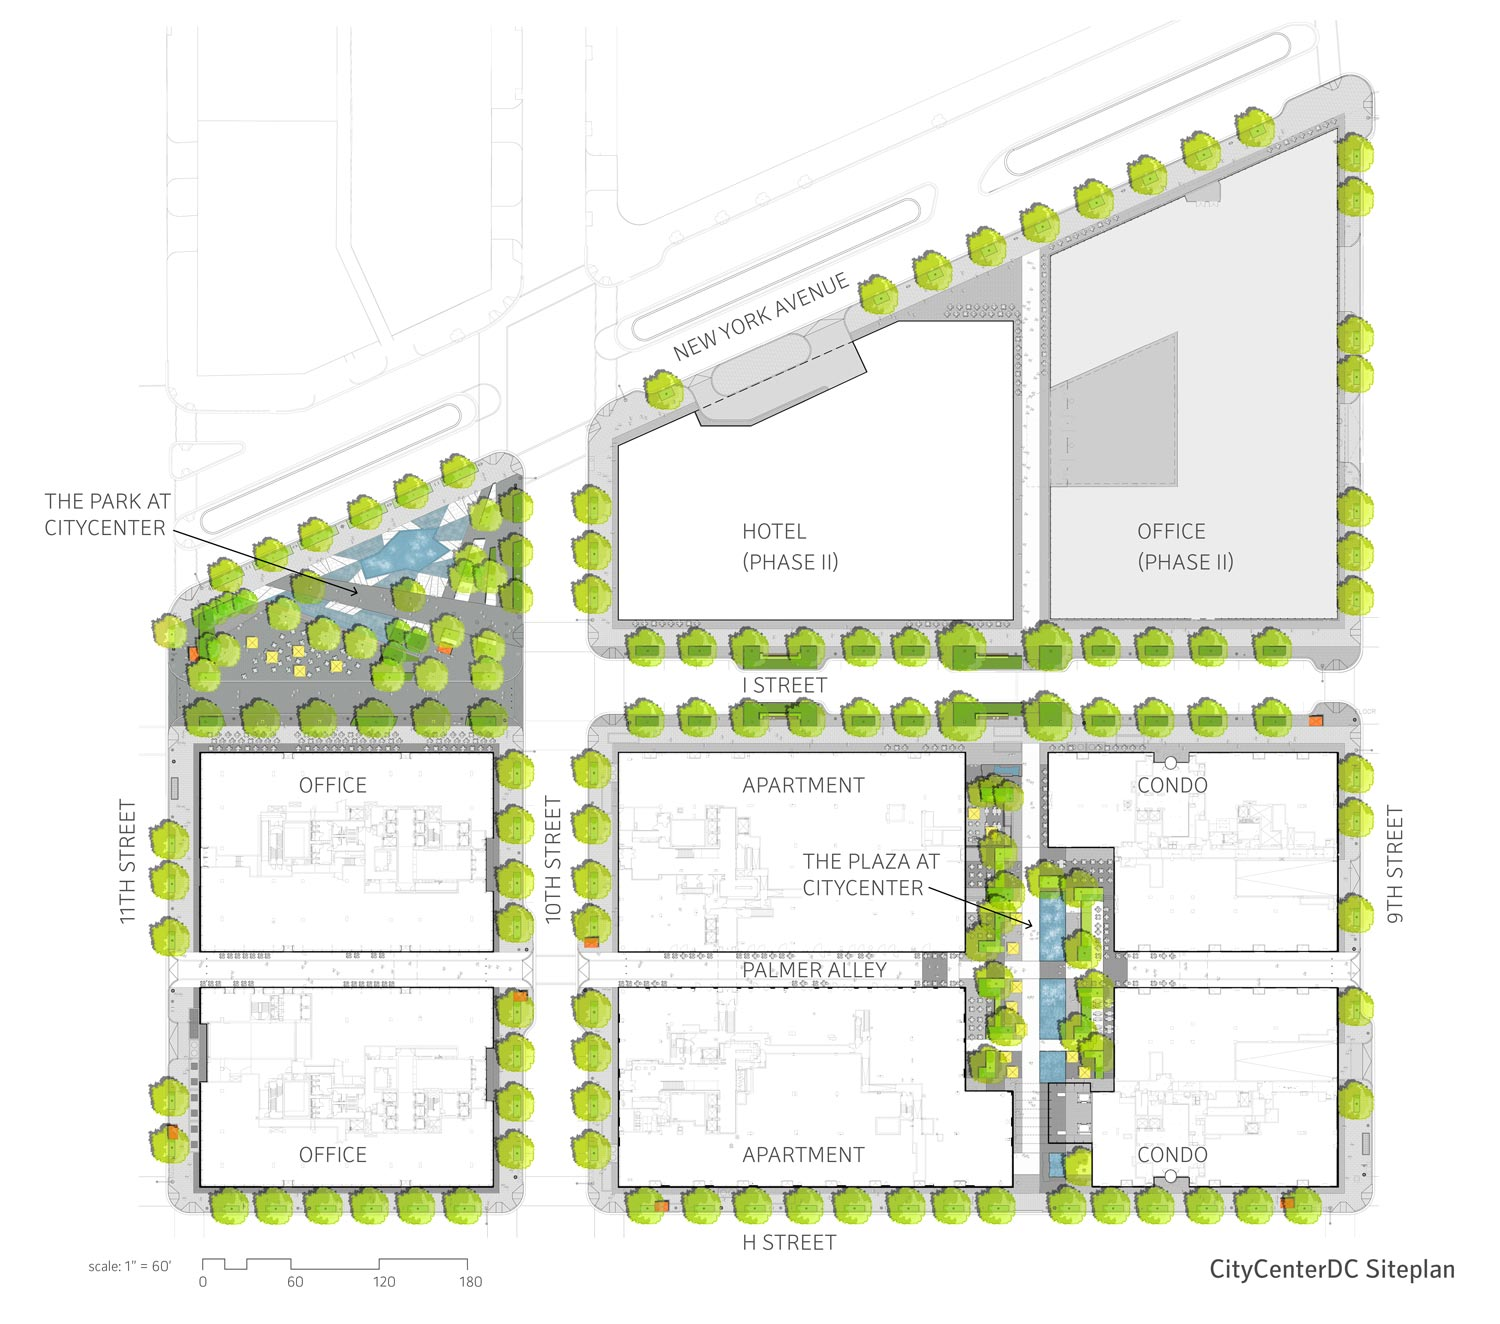 GGN-CCDC-annotated-siteplan-160406.jpg